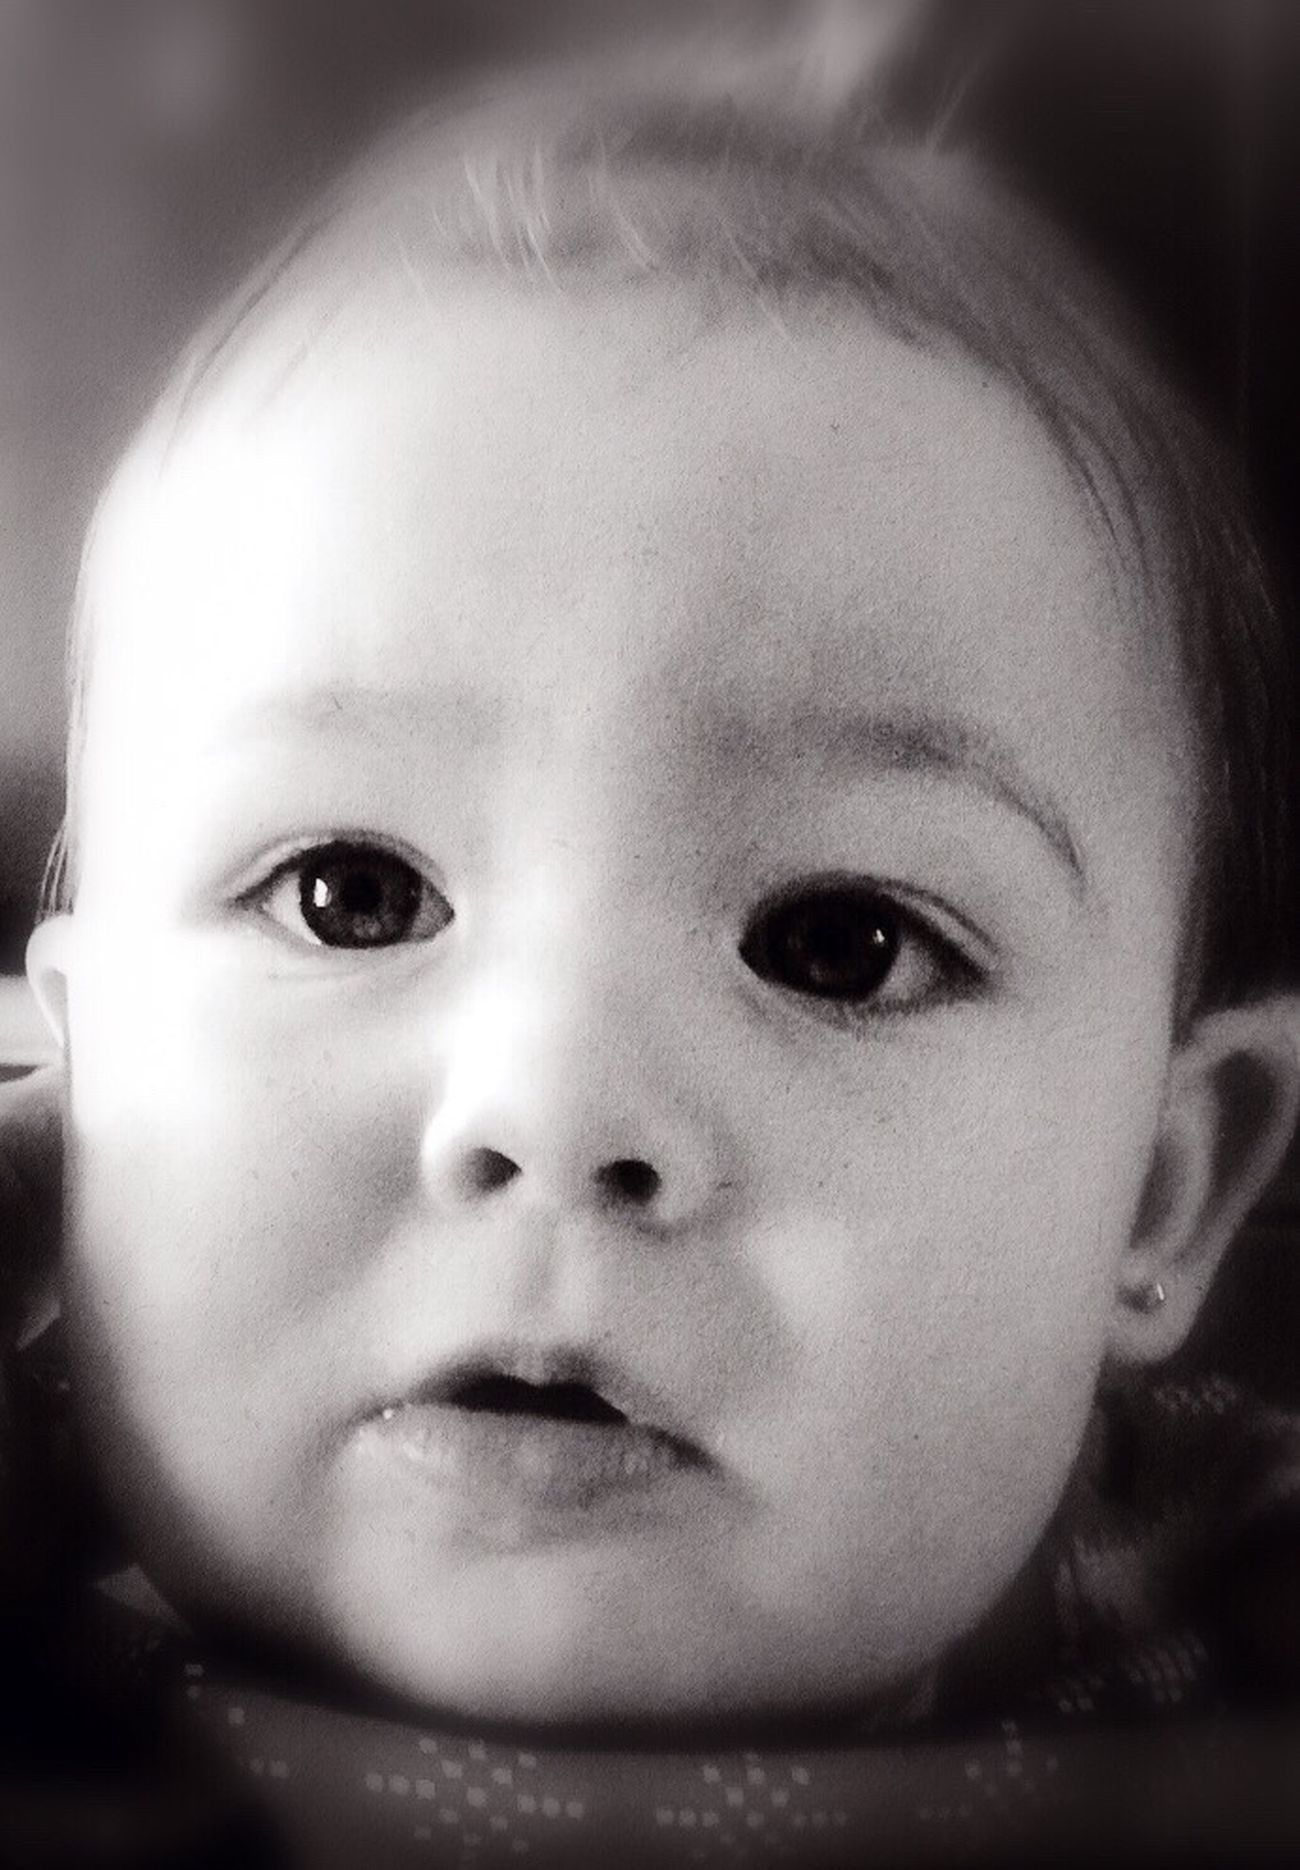 Cori Previous Photo Camerafilters Editedbyme Childhood Innocence Cute Looking At Camera Portrait Close-up Baby Babyhood Real People Human Face One Person Headshot Front View Indoors  Human Eye Day People IPhoneography